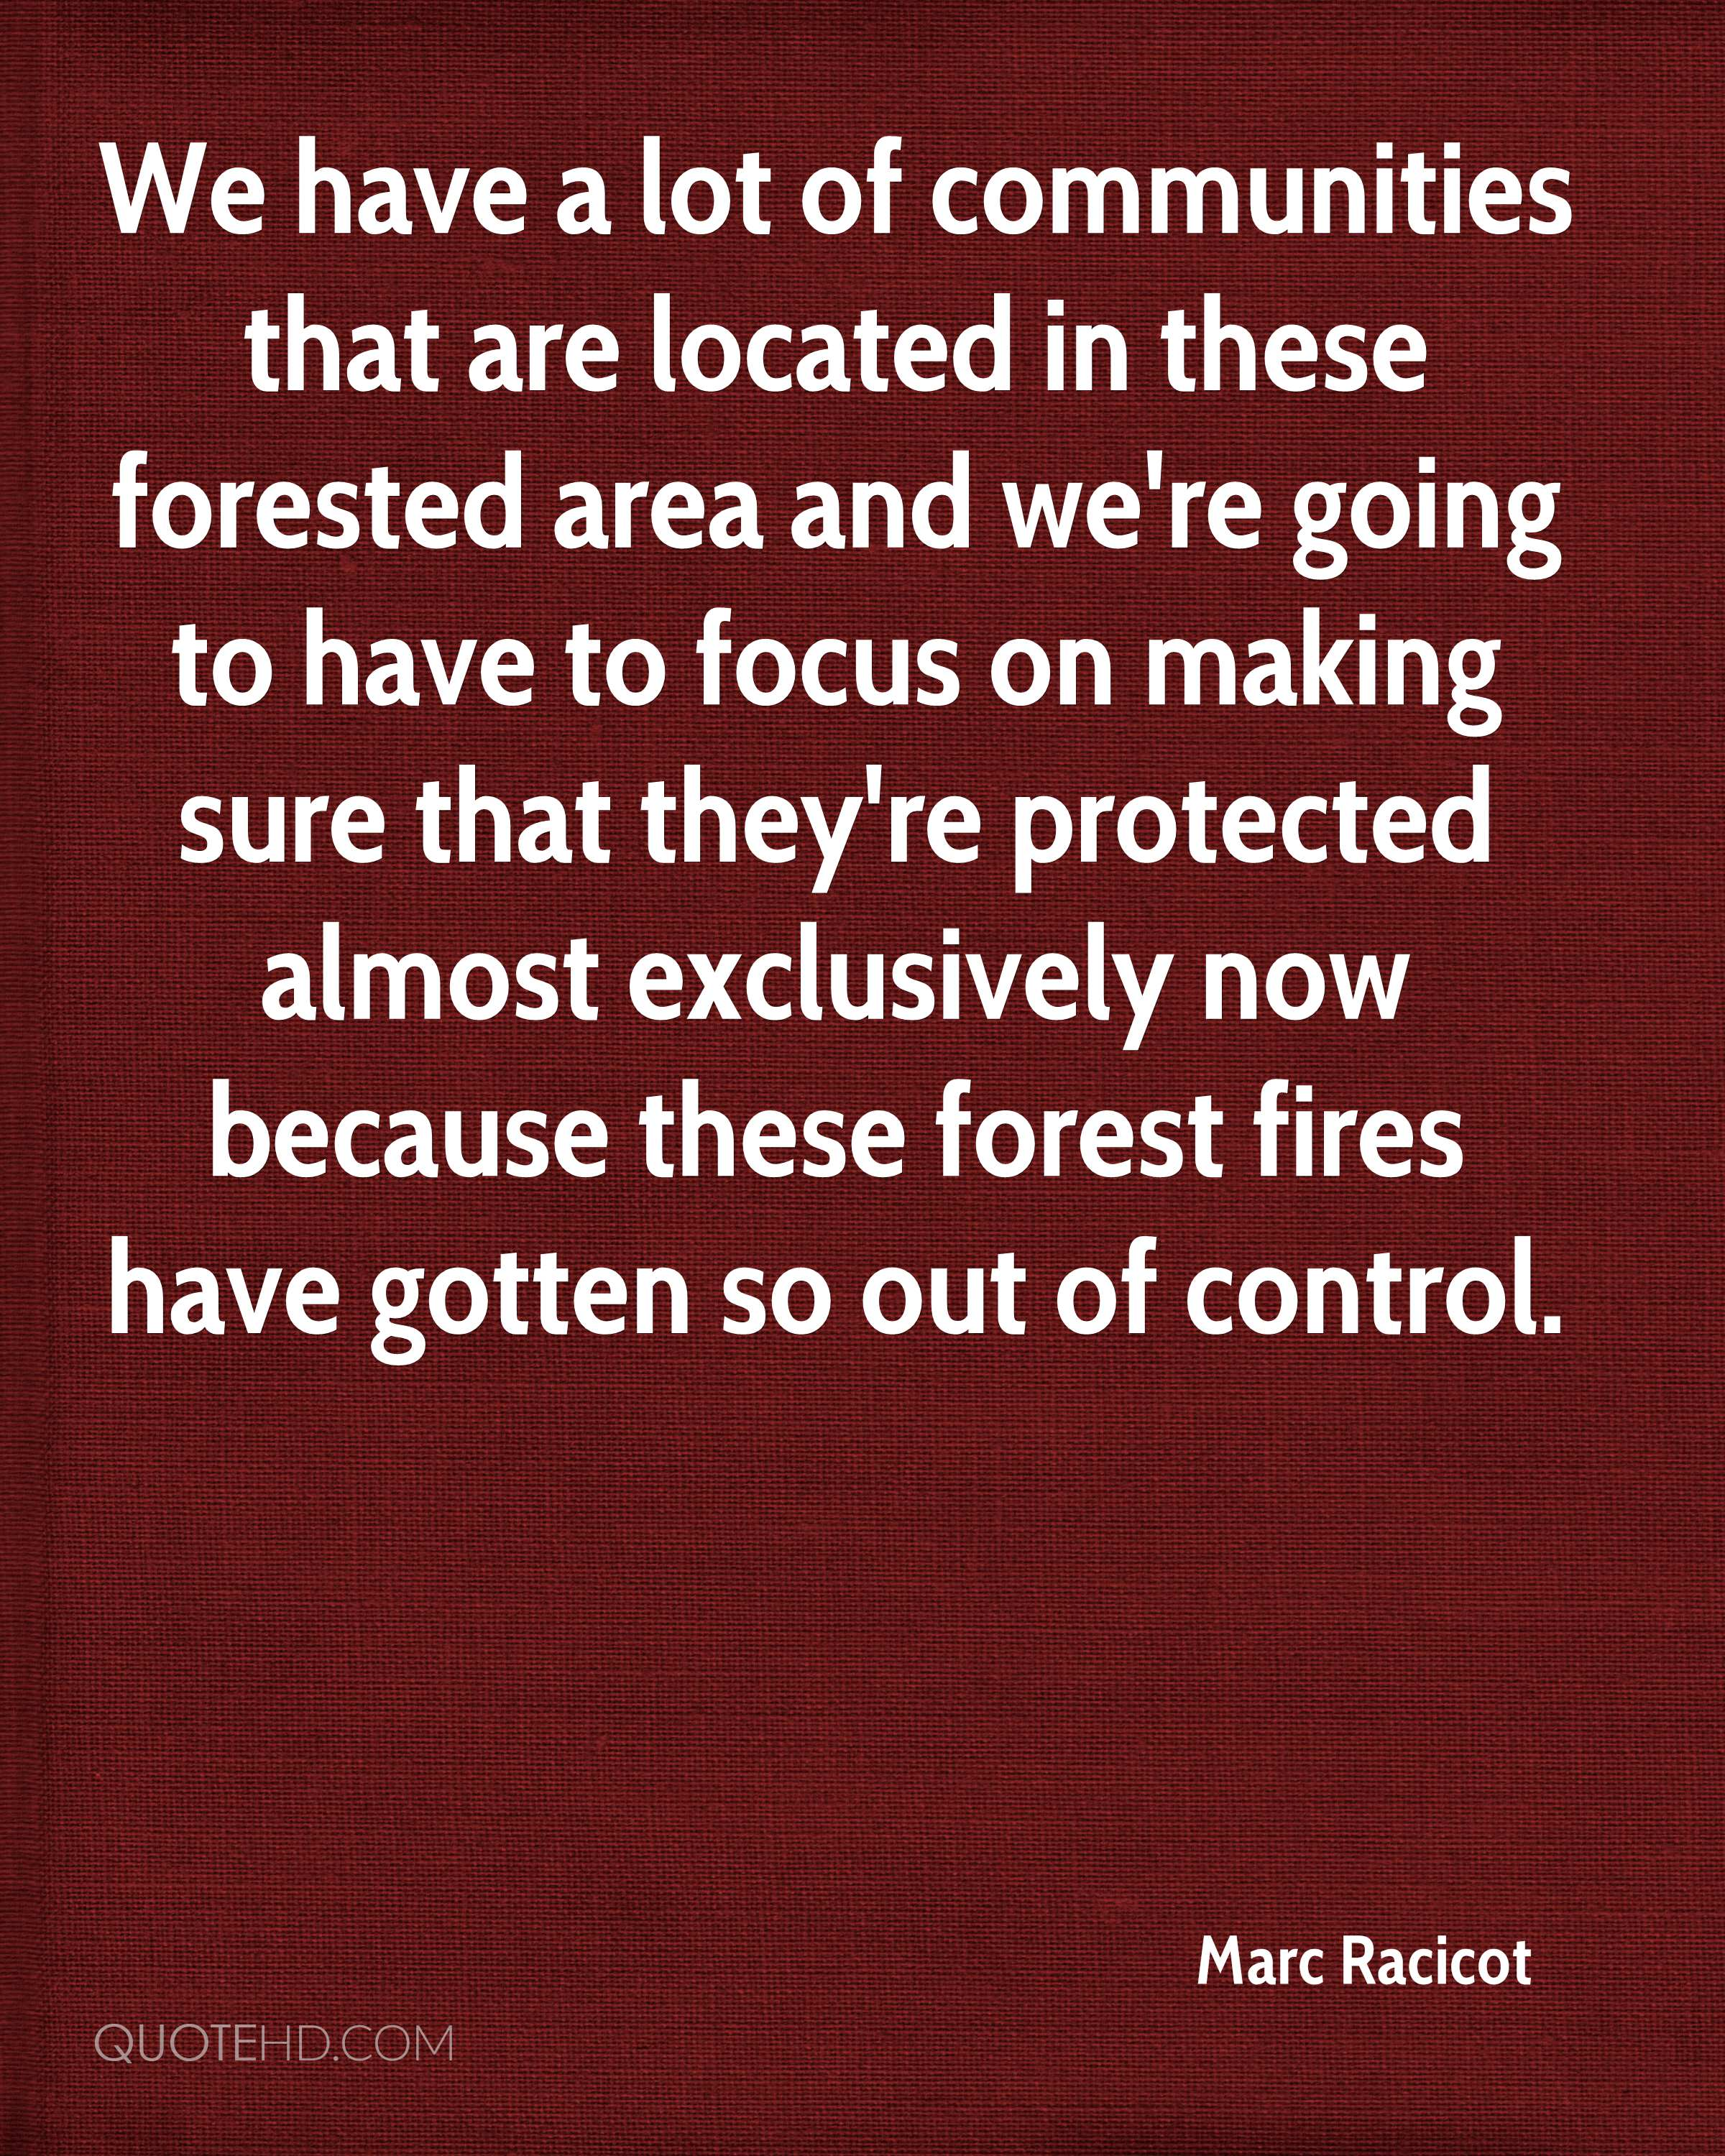 We have a lot of communities that are located in these forested area and we're going to have to focus on making sure that they're protected almost exclusively now because these forest fires have gotten so out of control.